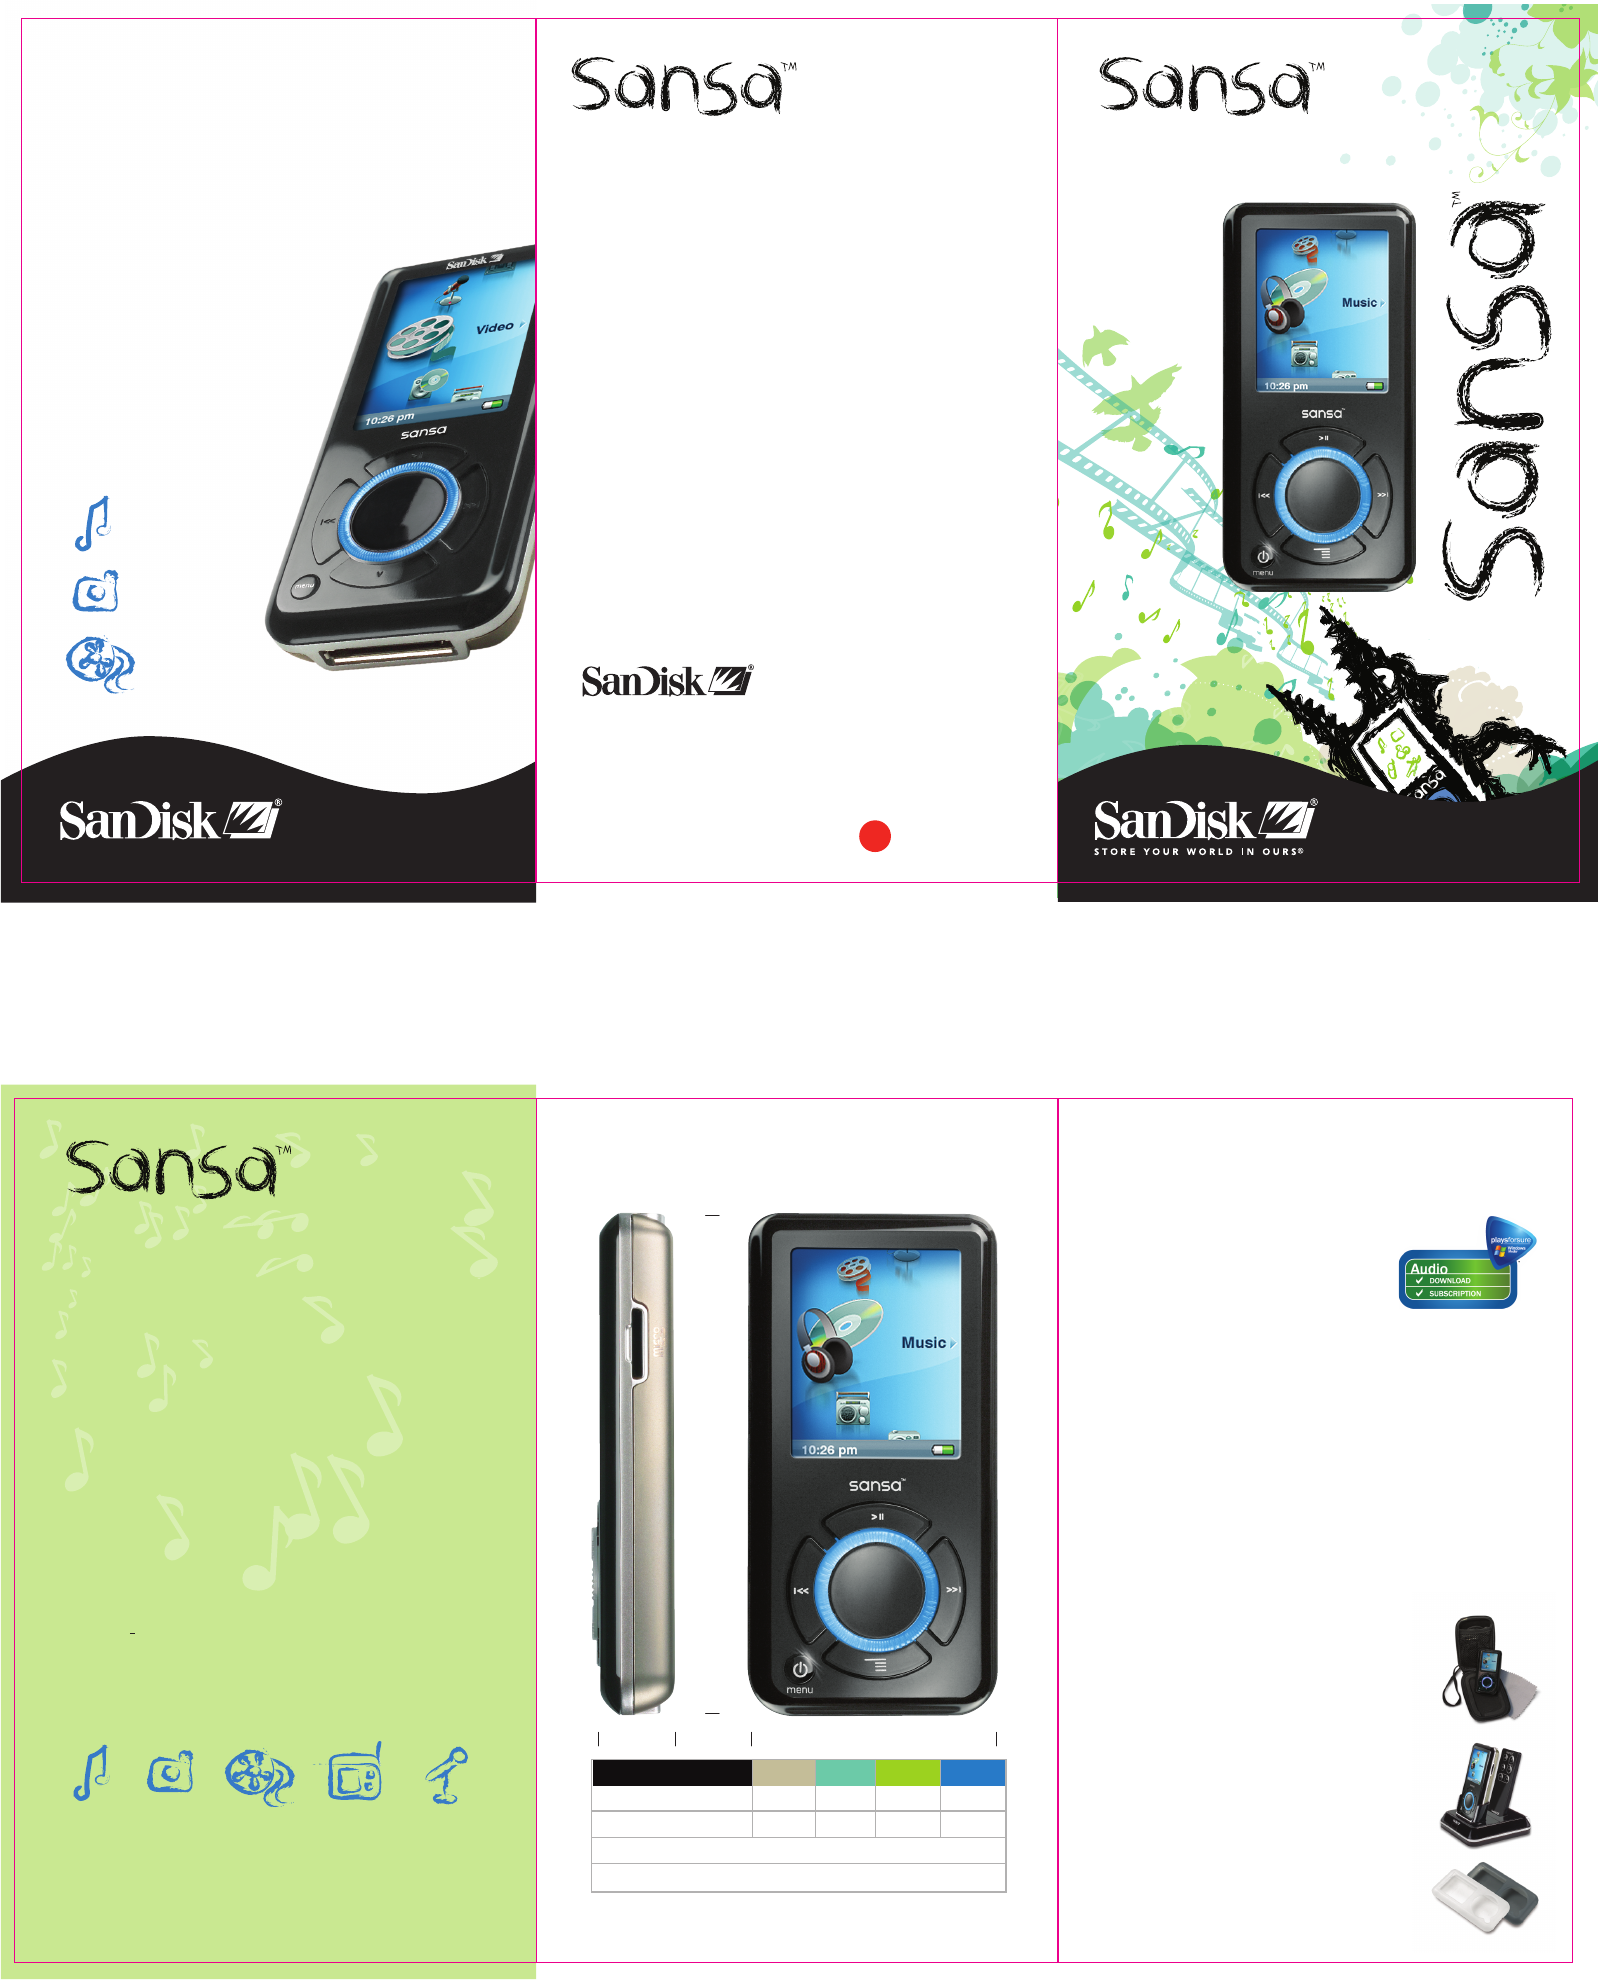 sandisk mp3 player e250 user guide manualsonline com rh portablemedia manualsonline com sansa e250 user manual sansa e250r manual